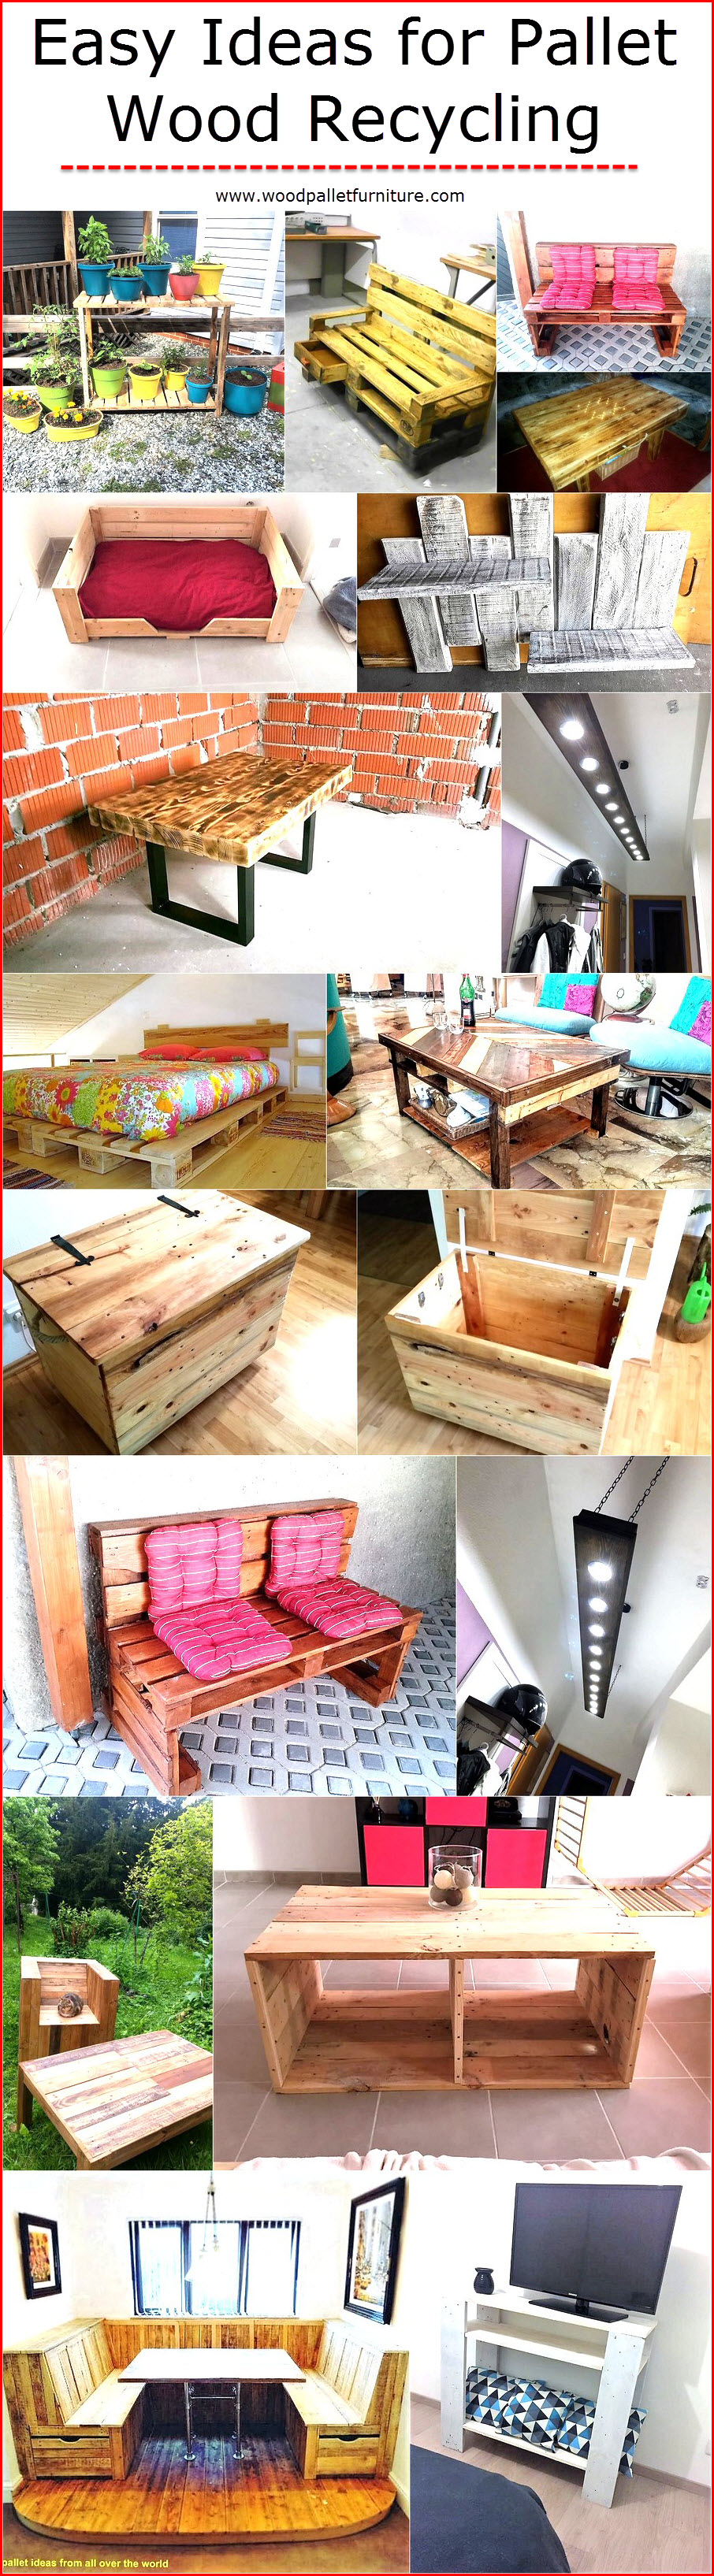 easy-pallet-wood-recycling-ideas